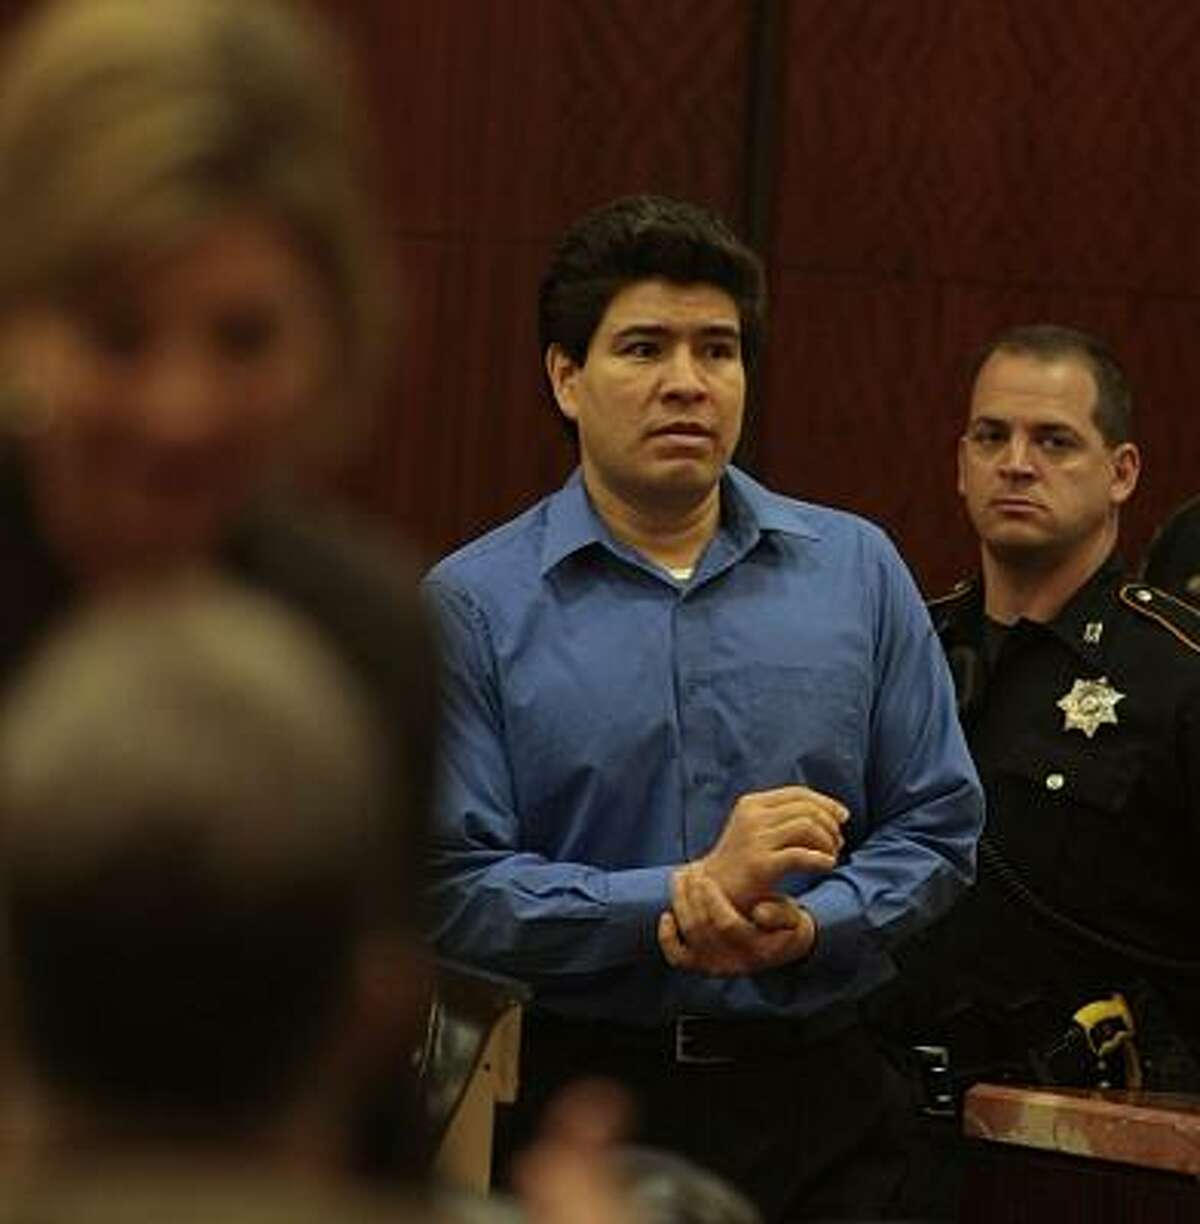 Juan Leonardo Quintero enters the courtroom for the sentencing phase of his death penalty trial at the Harris County Criminal Justice Center, May 13, 2008.